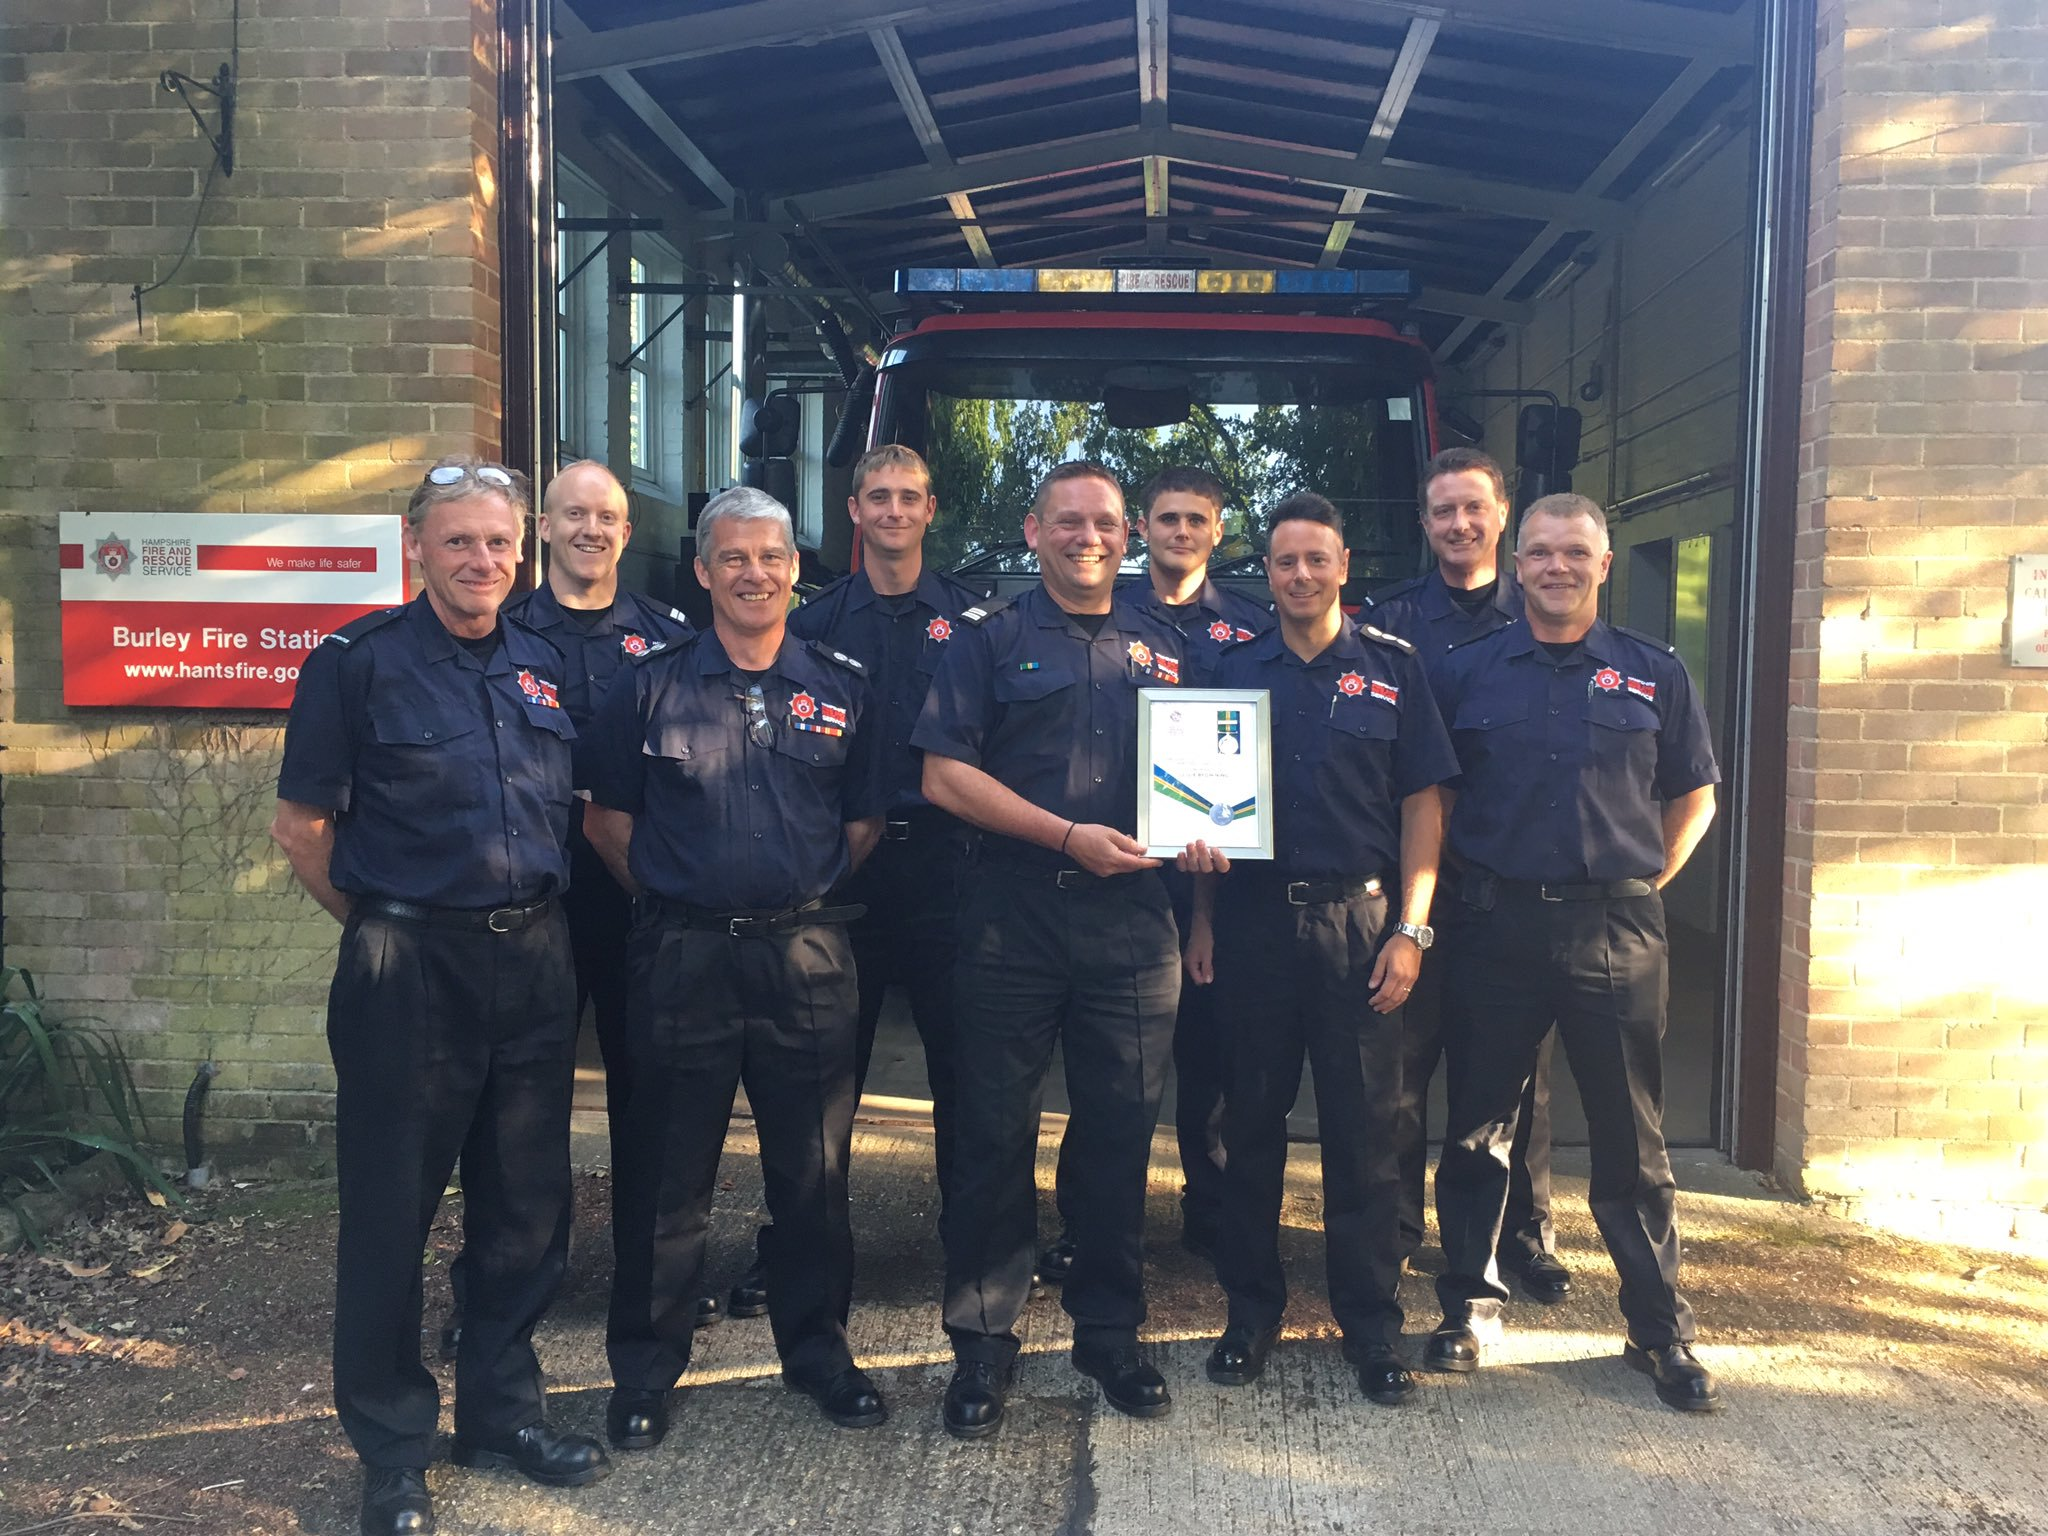 The team at Burley Fire Station. More on-call firefighters needed